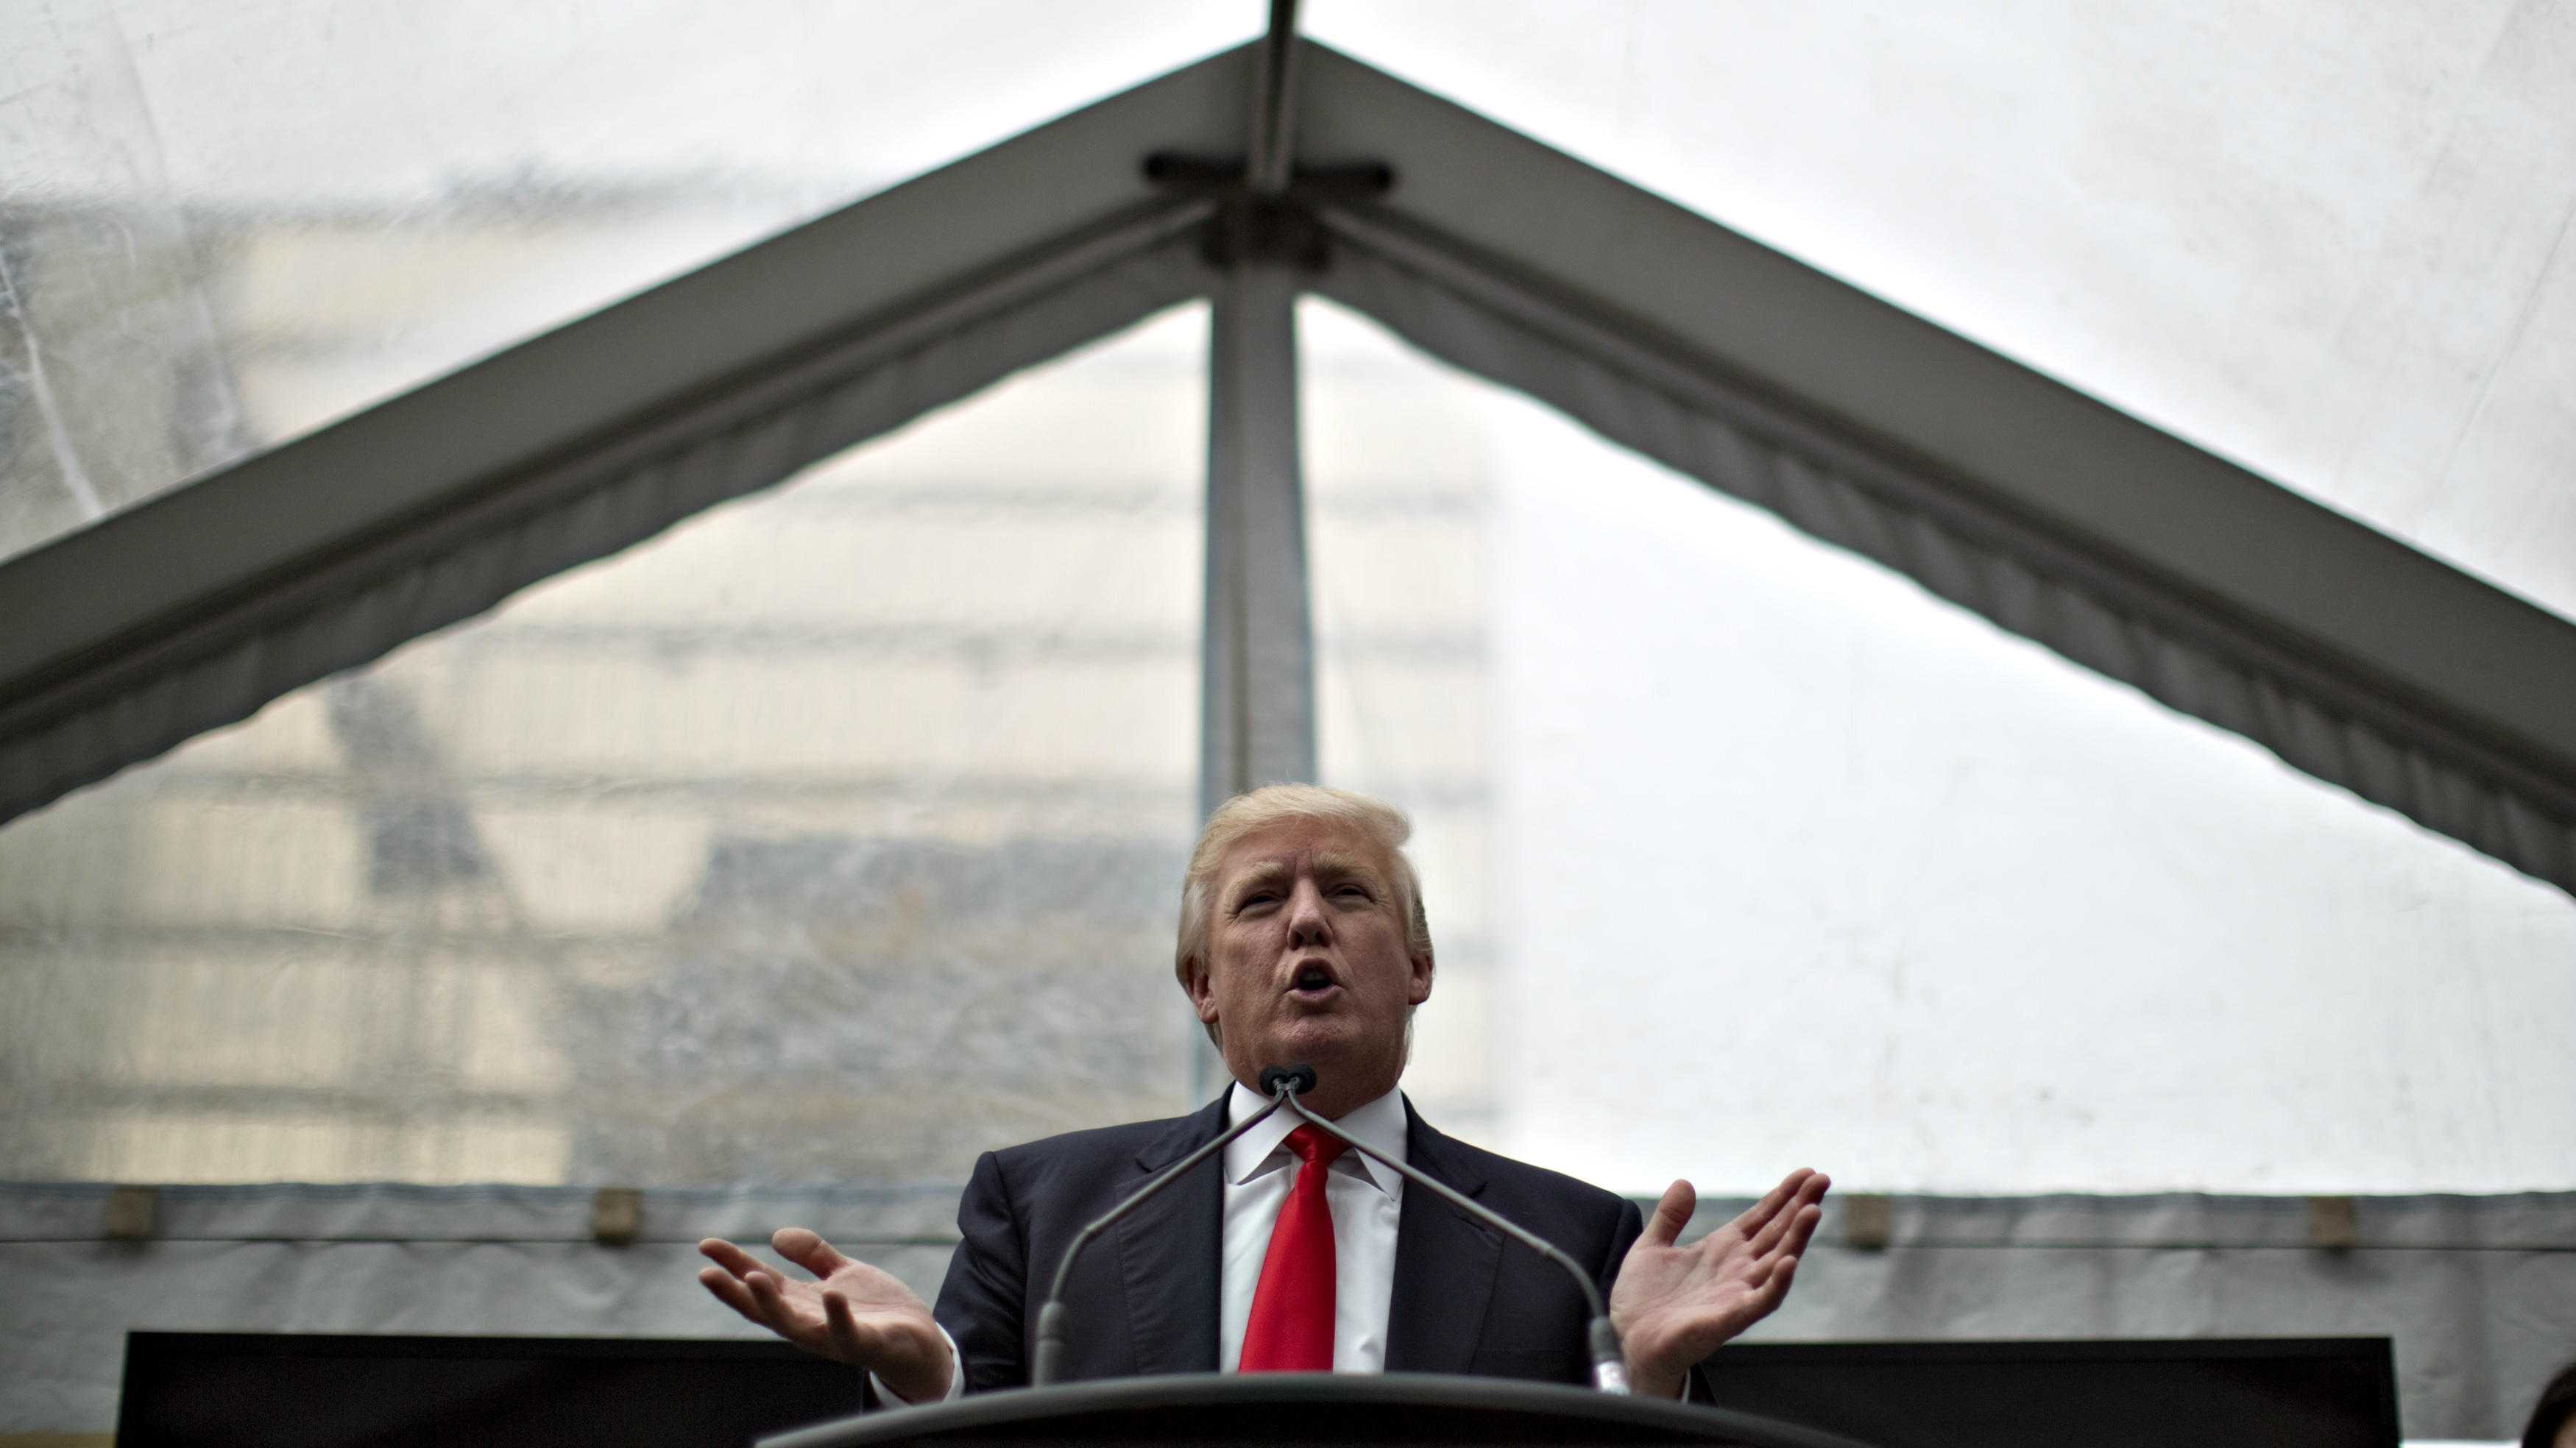 Trump addresses a ceremony announcing a new hotel and condominium complex in Vancouver.